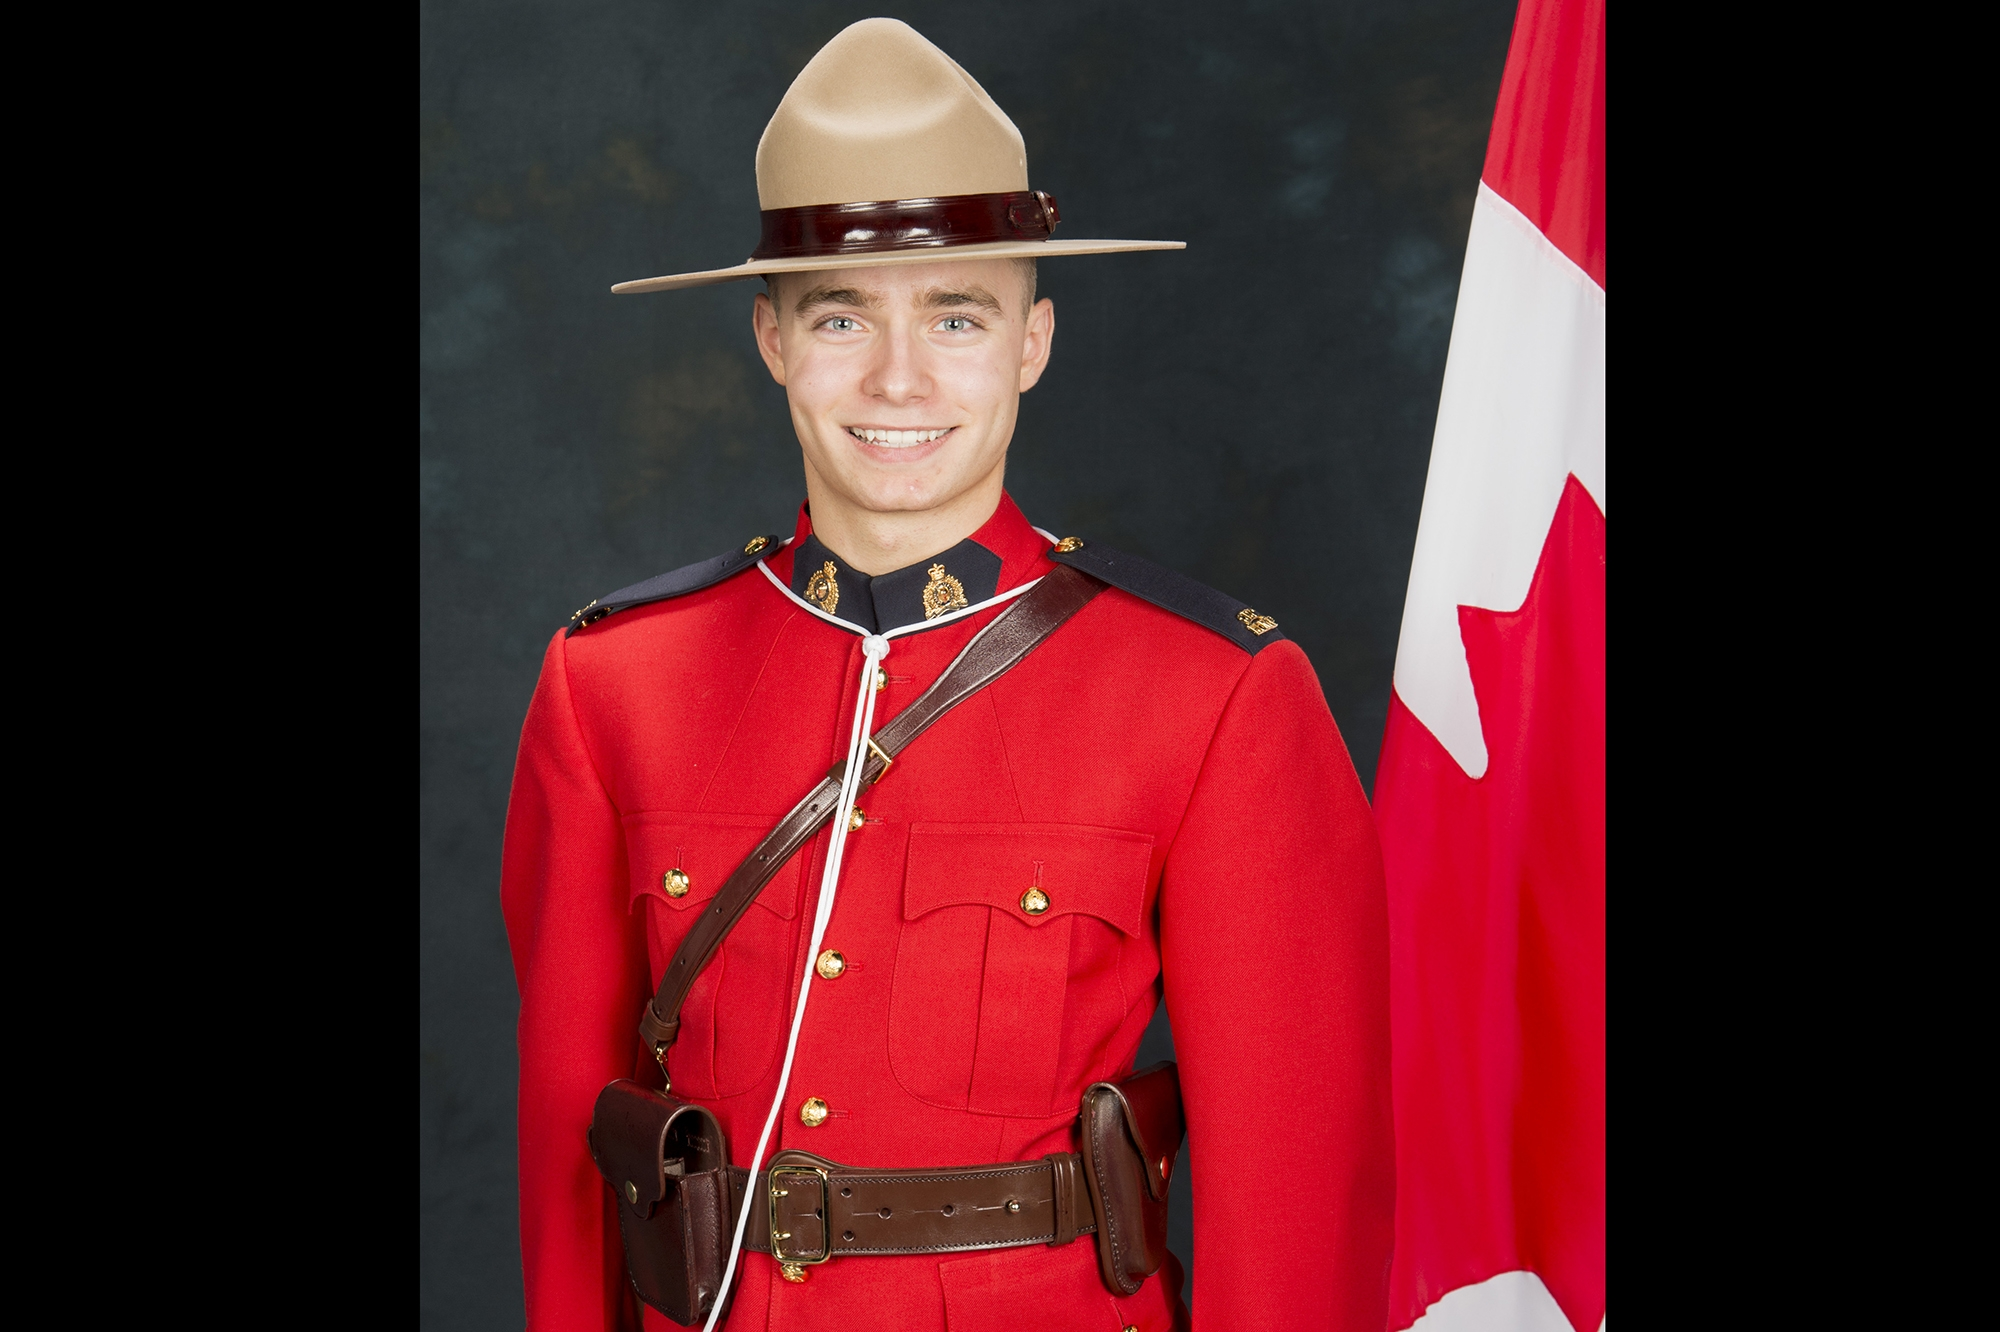 Saskatchewan RCMP mourns death of 26-year-old officer killed Saturday morning during traffic stop